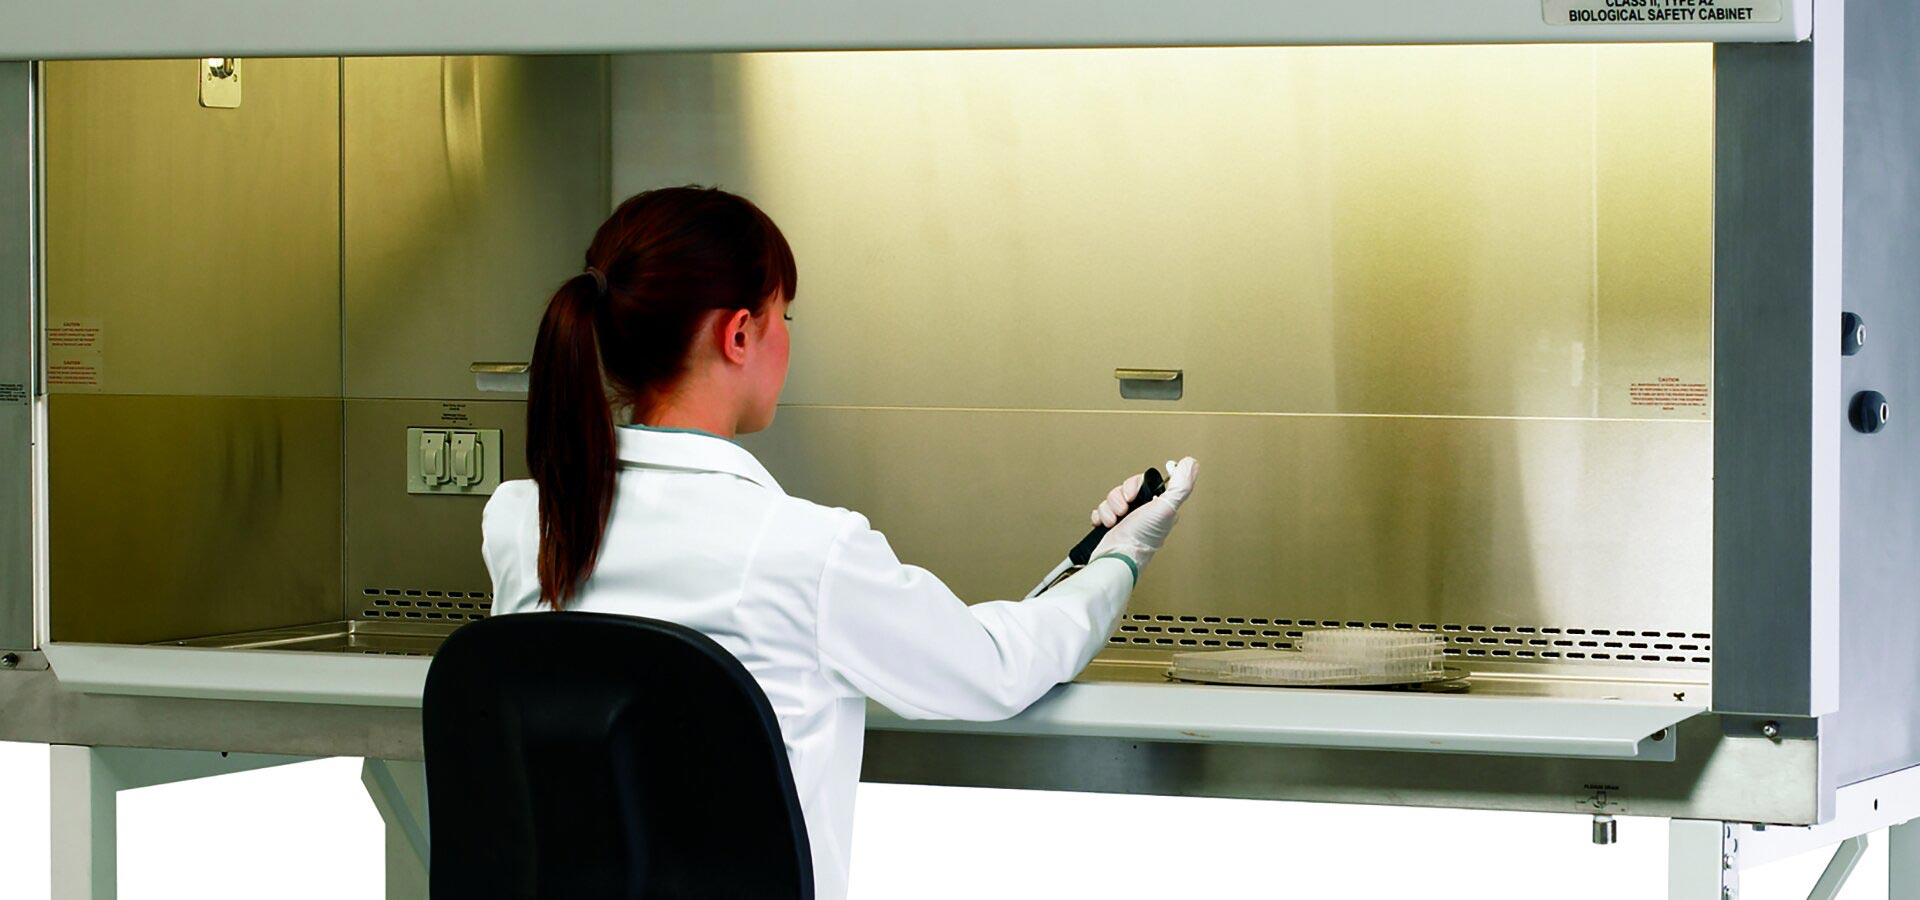 Biological Safety Cabinets That Meet Safety Standards